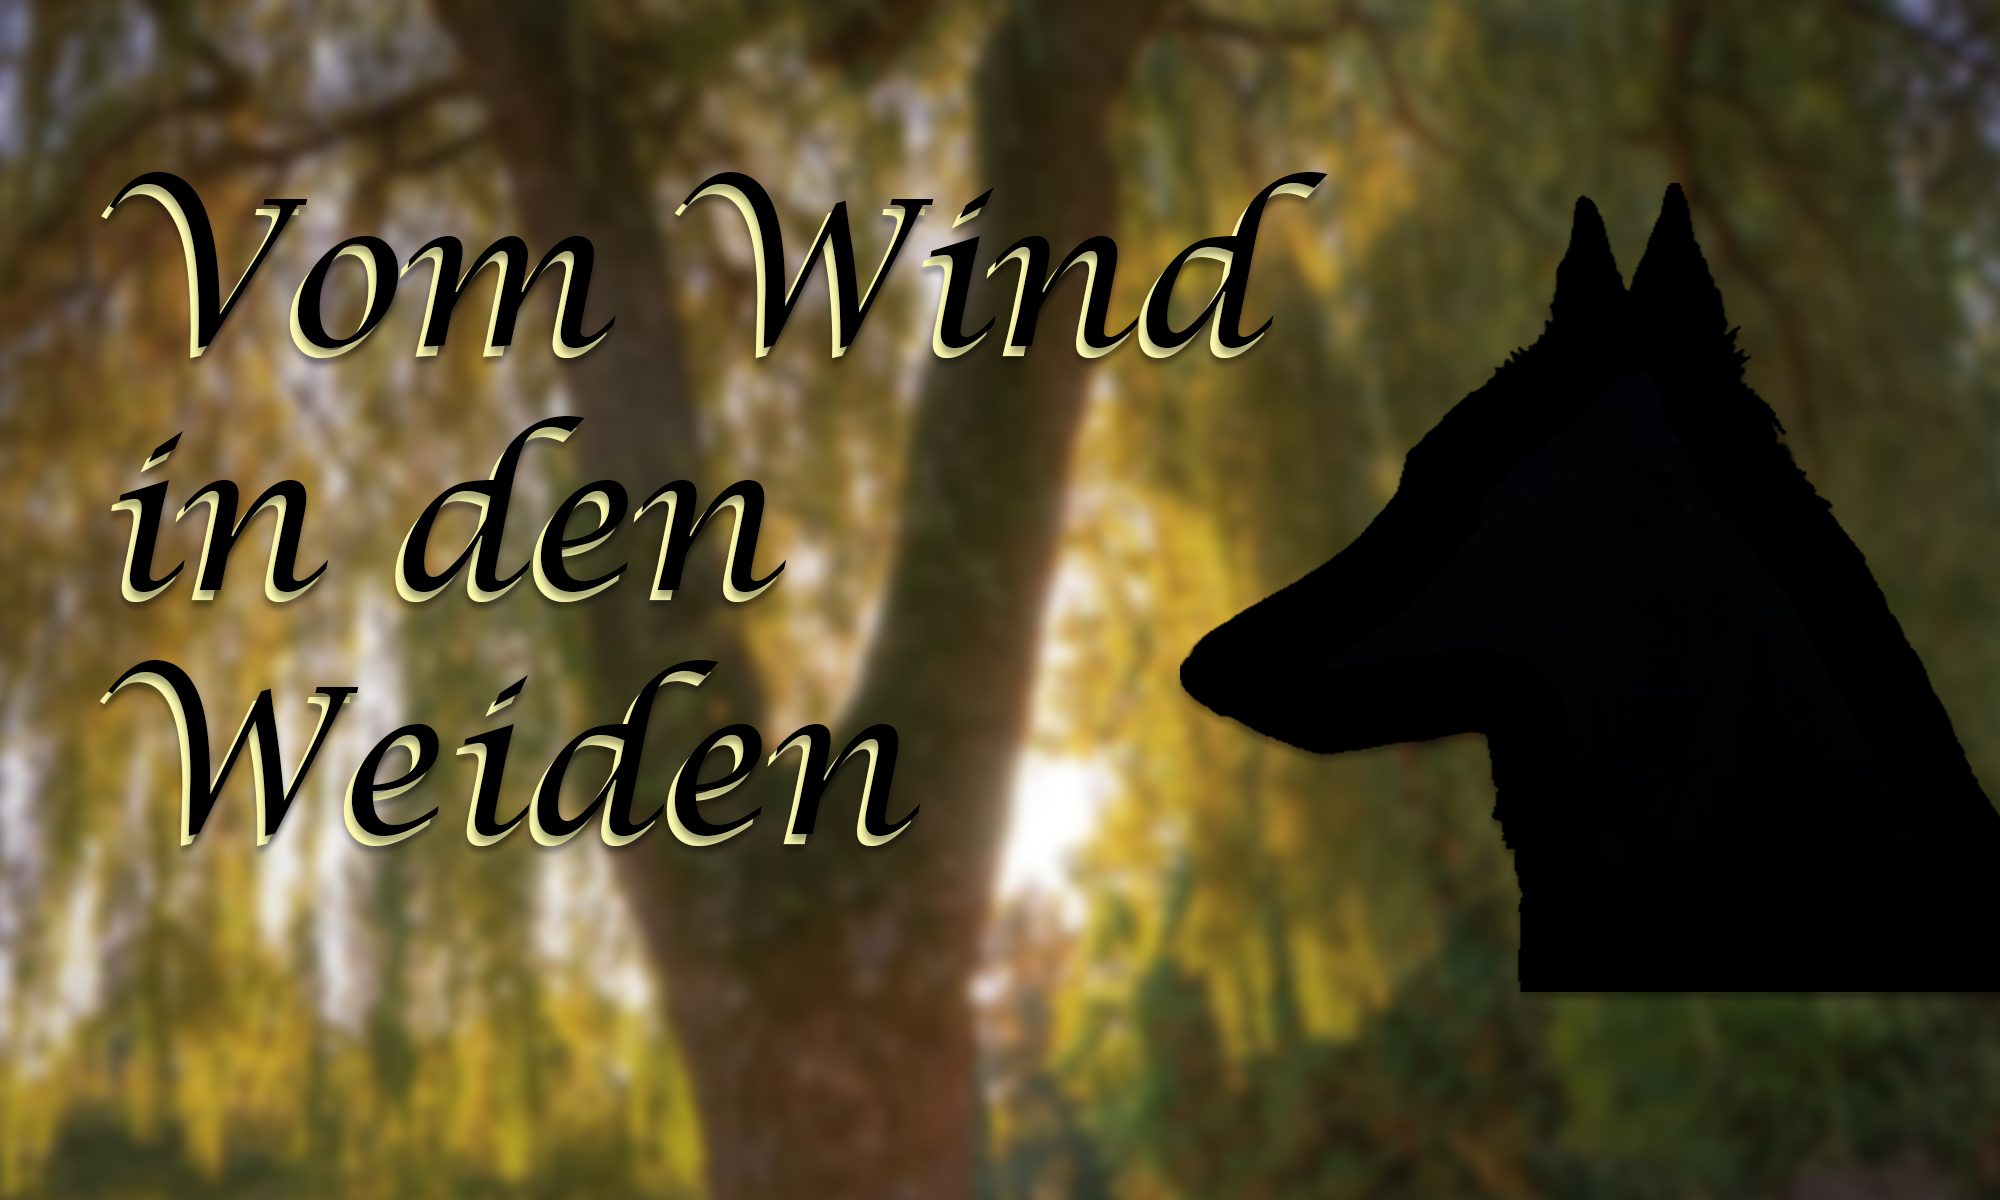 Vom Wind in den Weiden